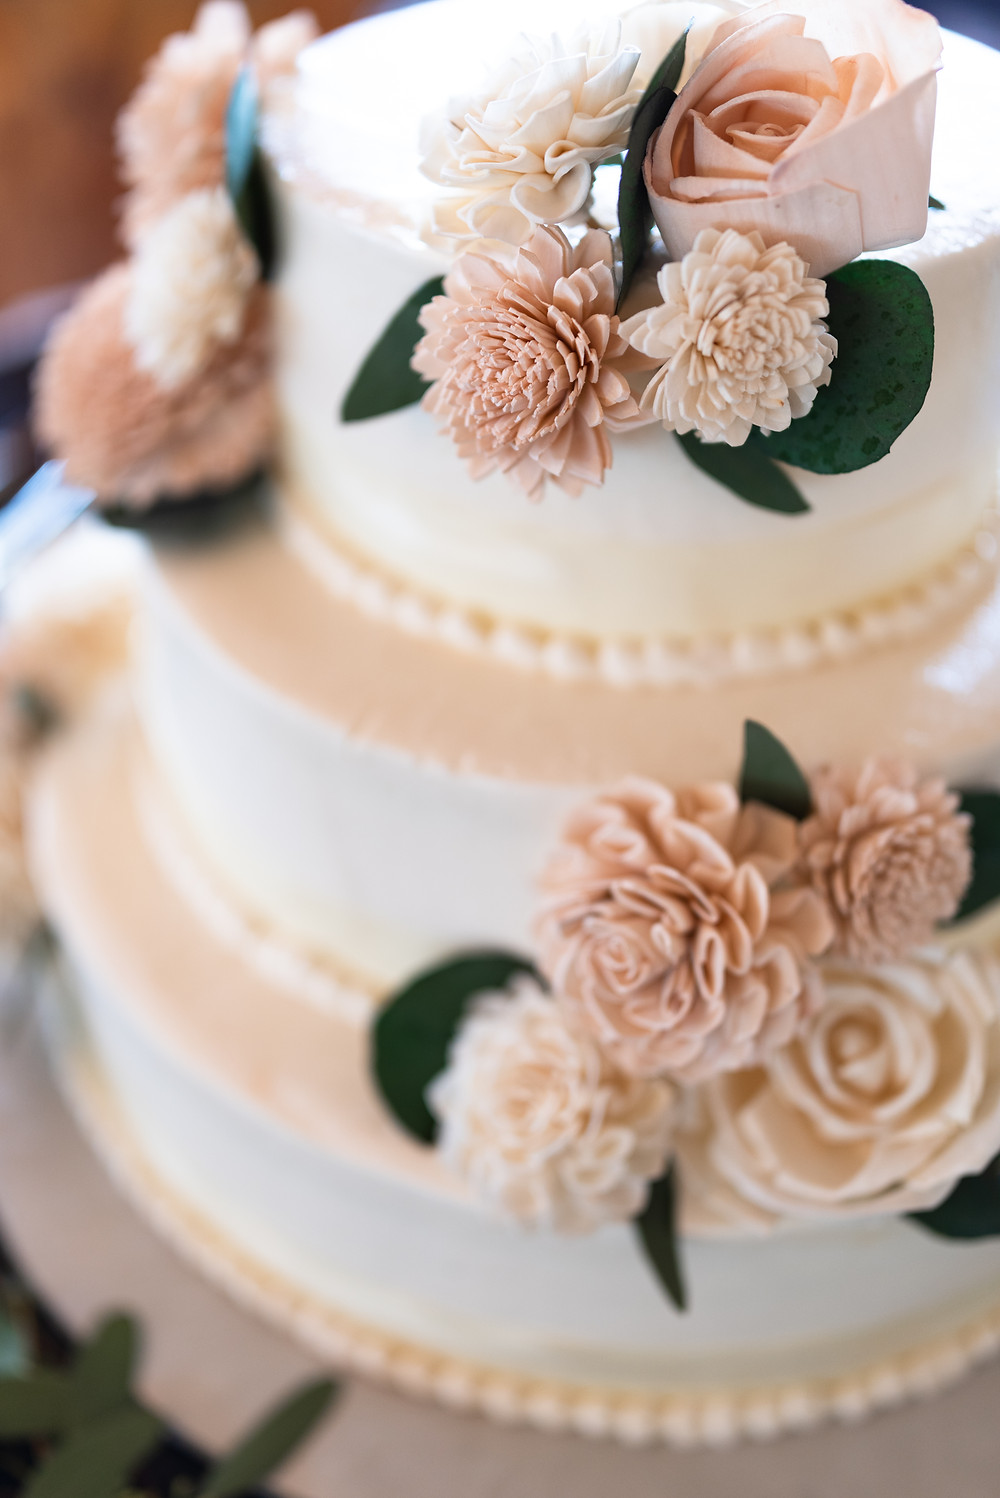 Three tiered white wedding cake decorated with blush wood flowers